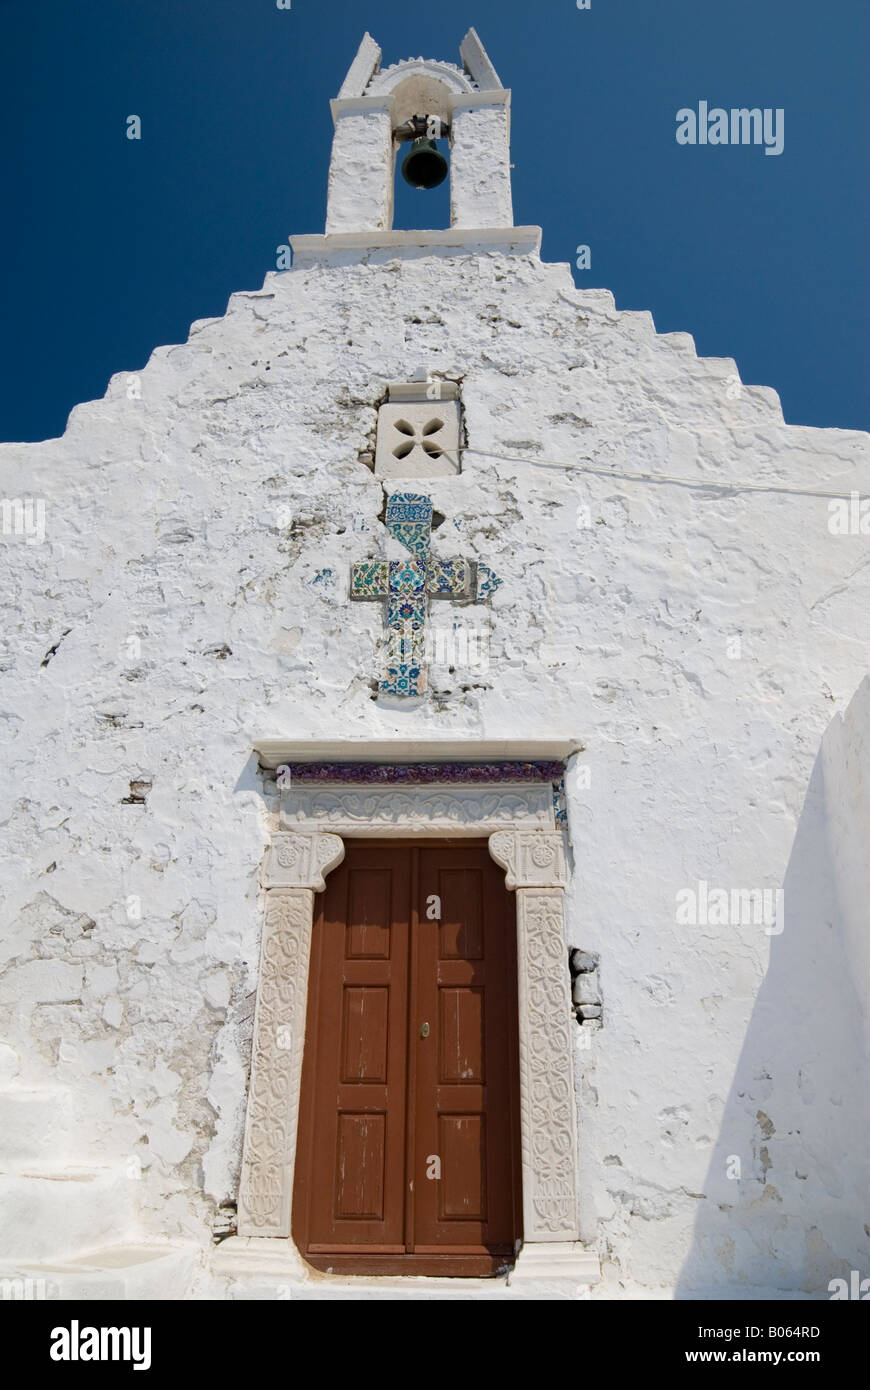 Whitewashed church of Agios Konstantinos with small bell tower and brown wooden door framed by engraved old marble - Stock Image